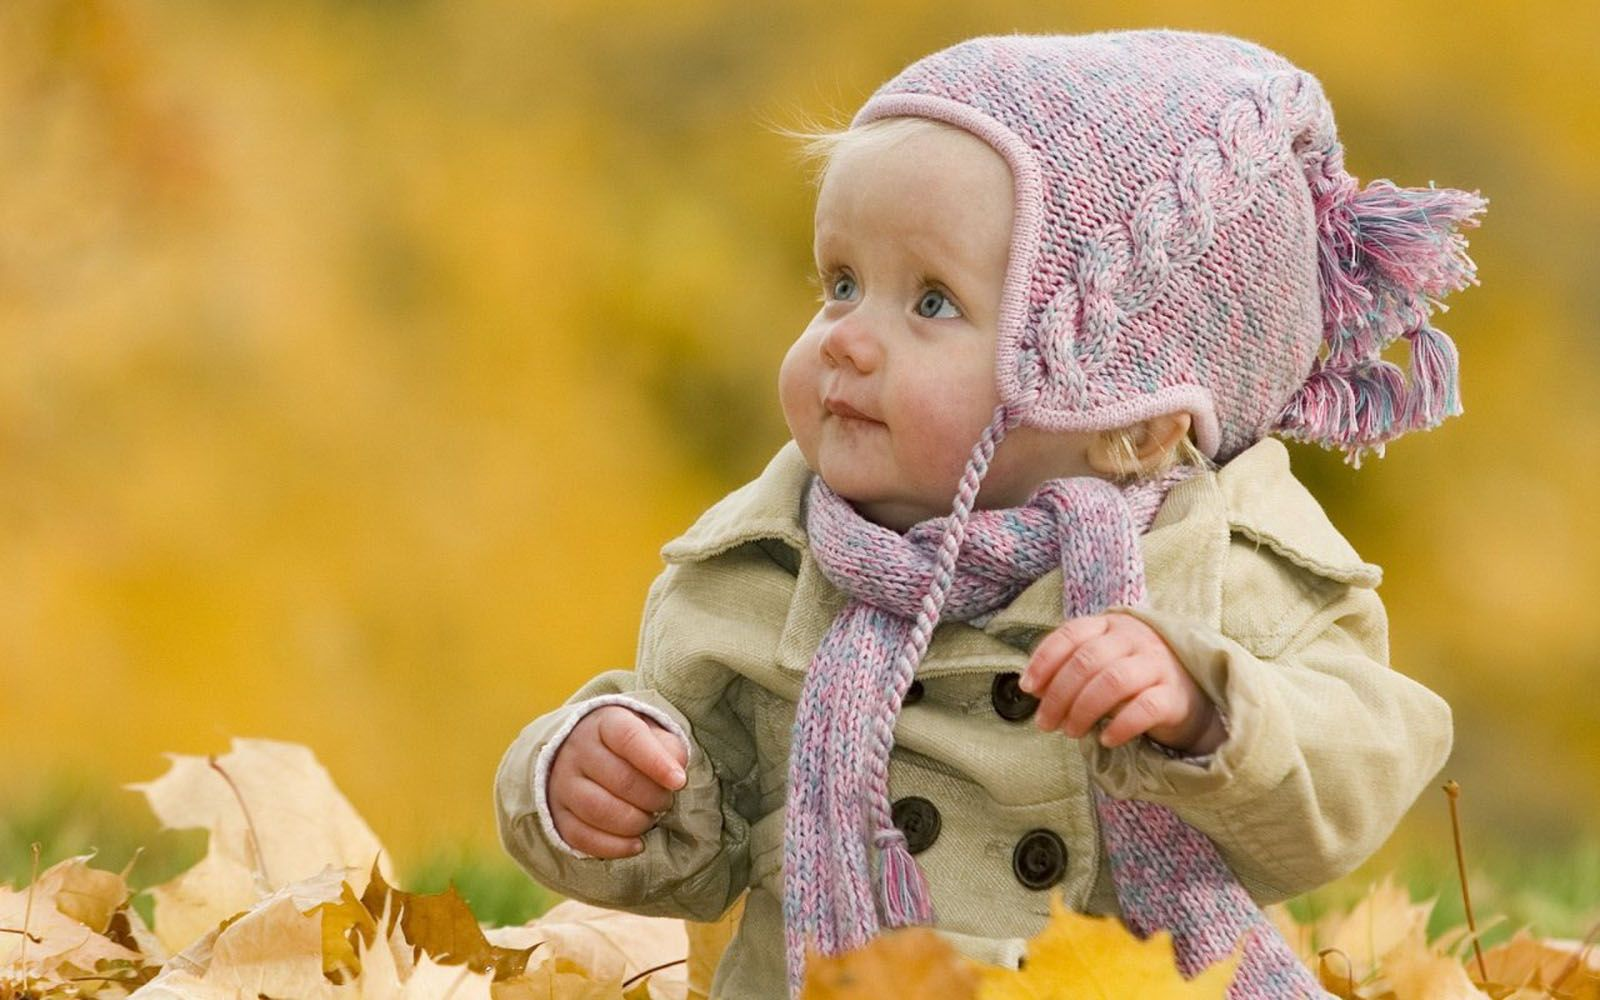 cute small girl wallpaper download wallpaper for phone and desktop